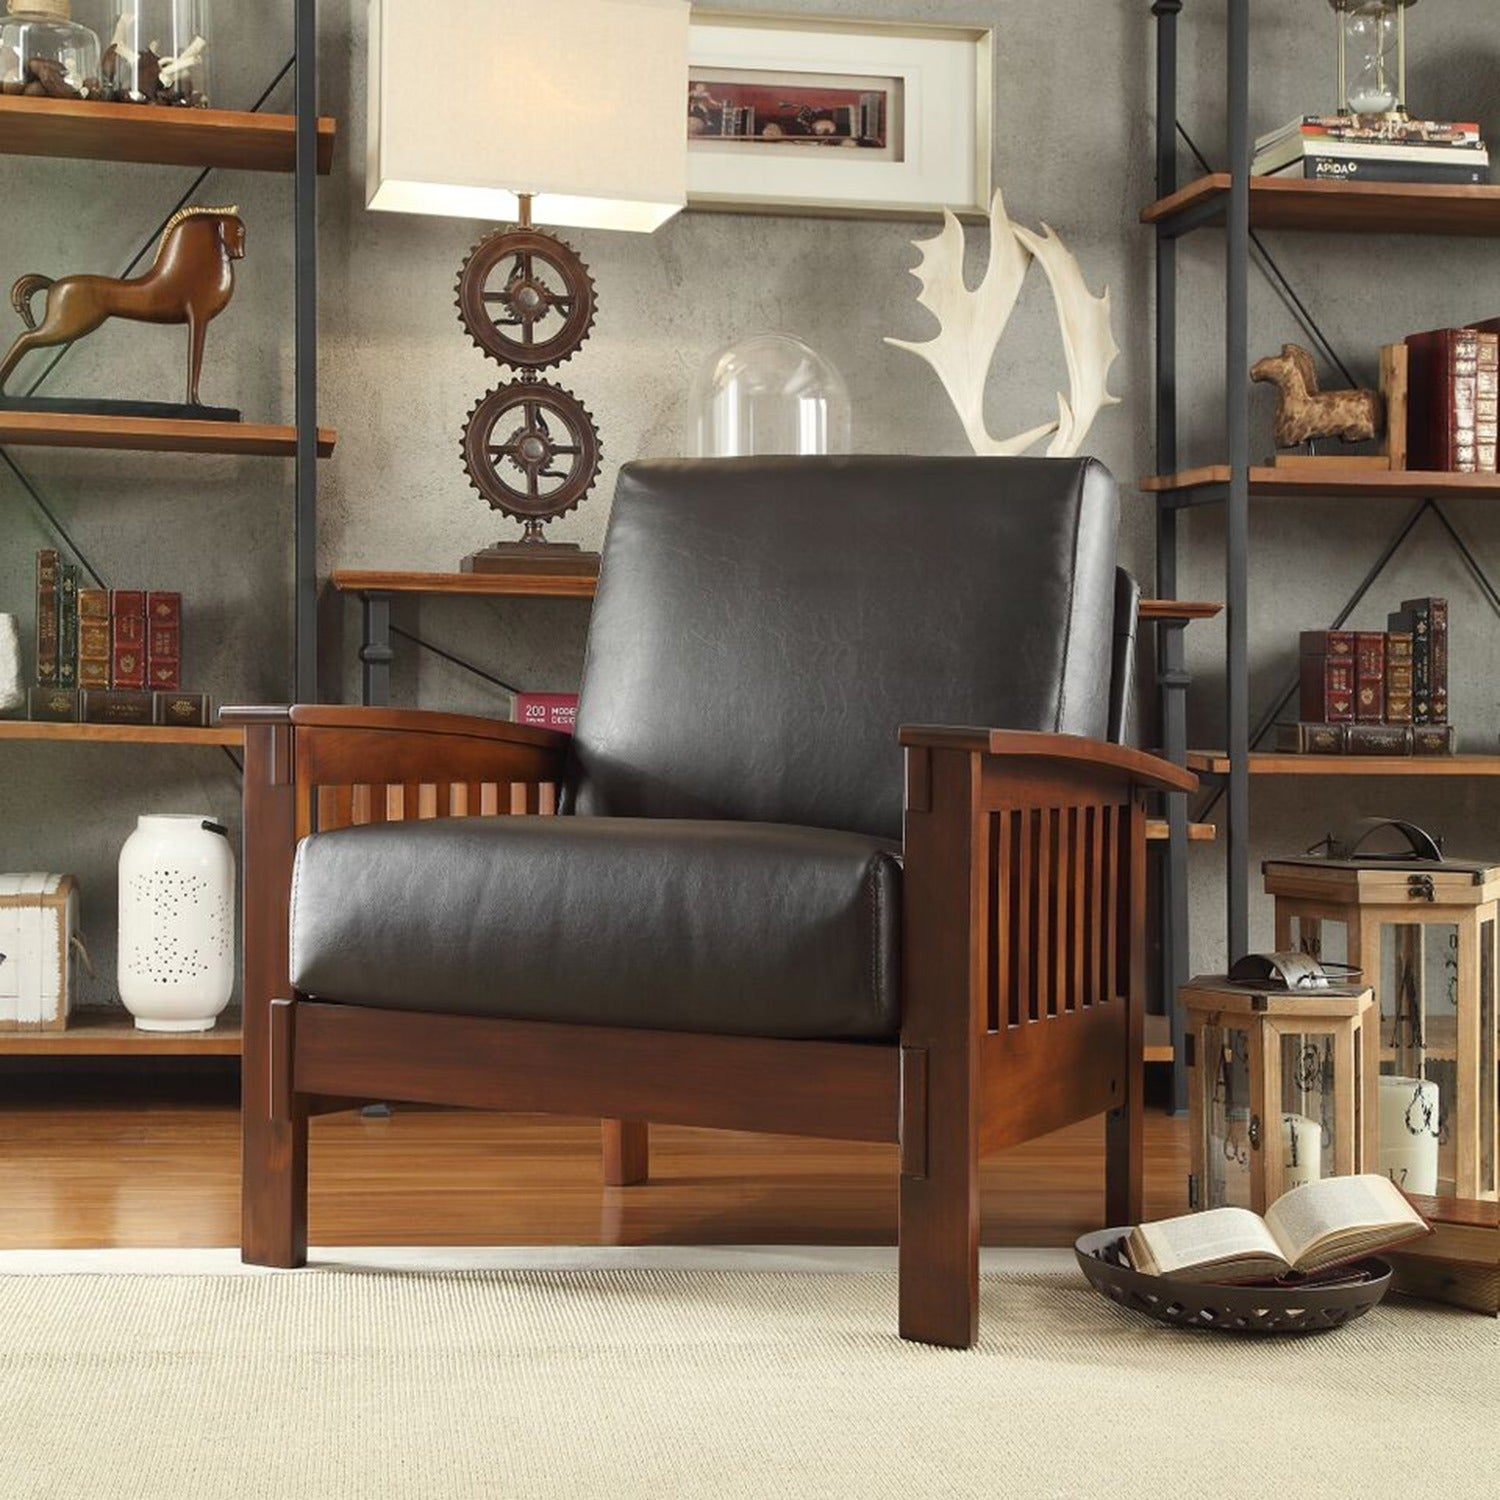 Hills Mission-Style Oak Accent Chair by iNSPIRE Q Classic & Buy Accent Chairs Orange Living Room Chairs Online at Overstock.com ...